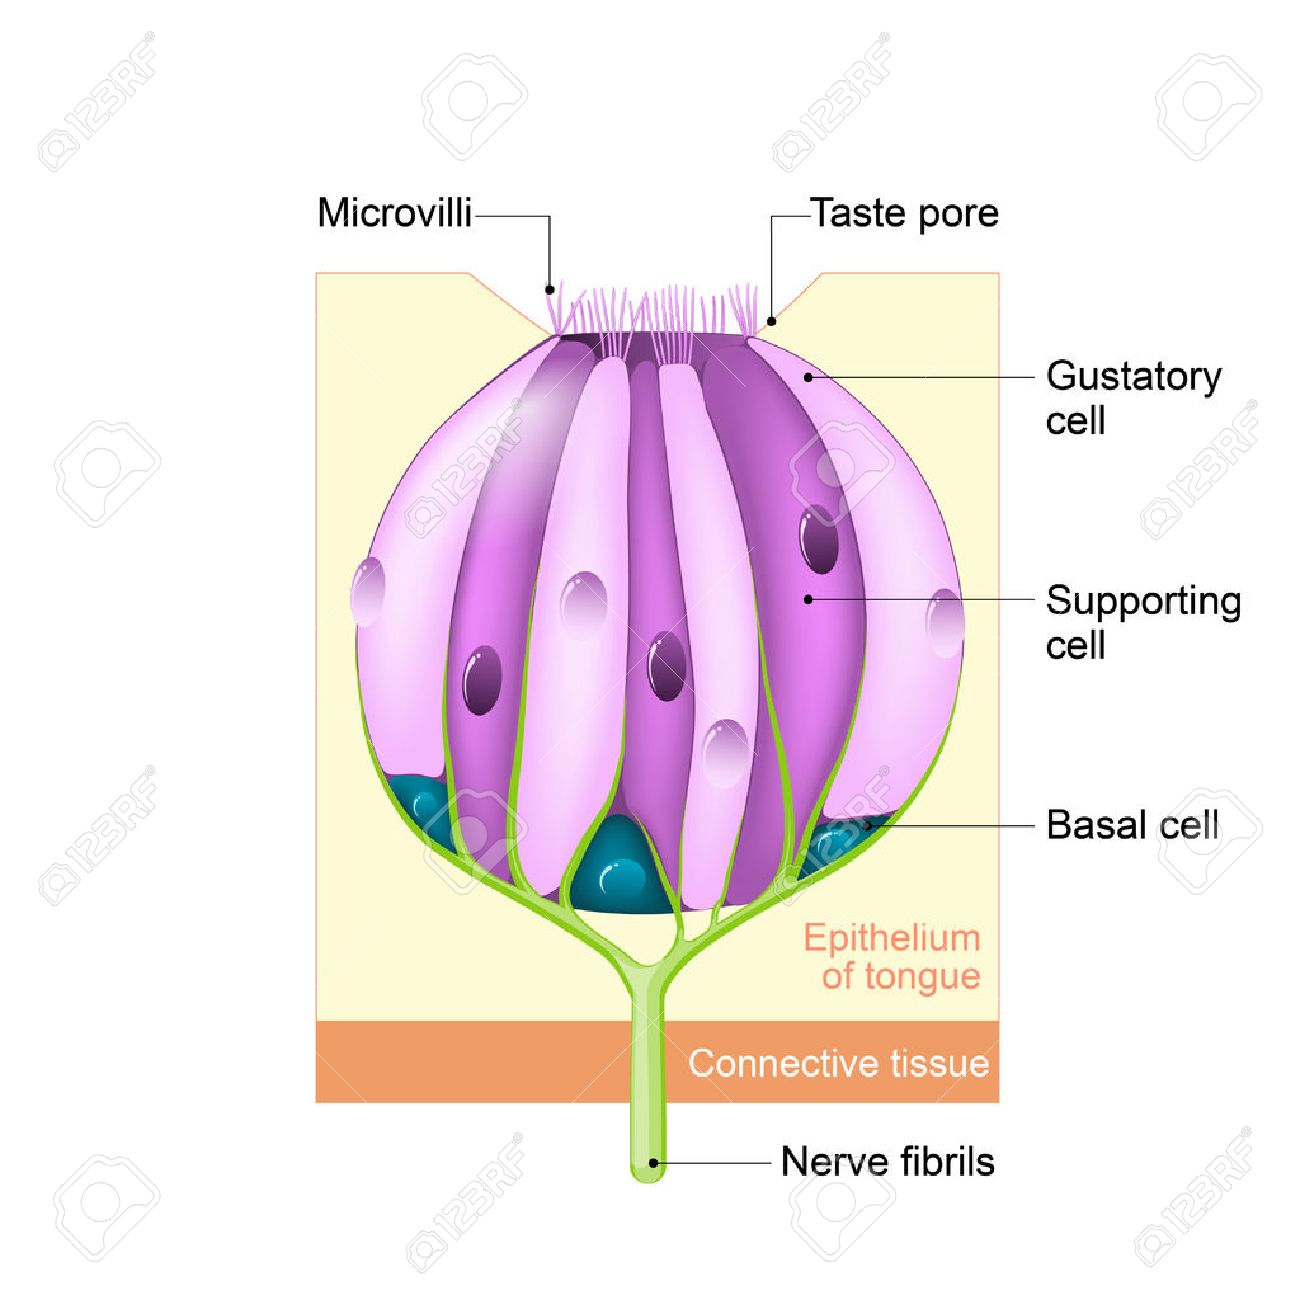 hight resolution of taste receptors of the tongue are present in the taste buds of papillae taste